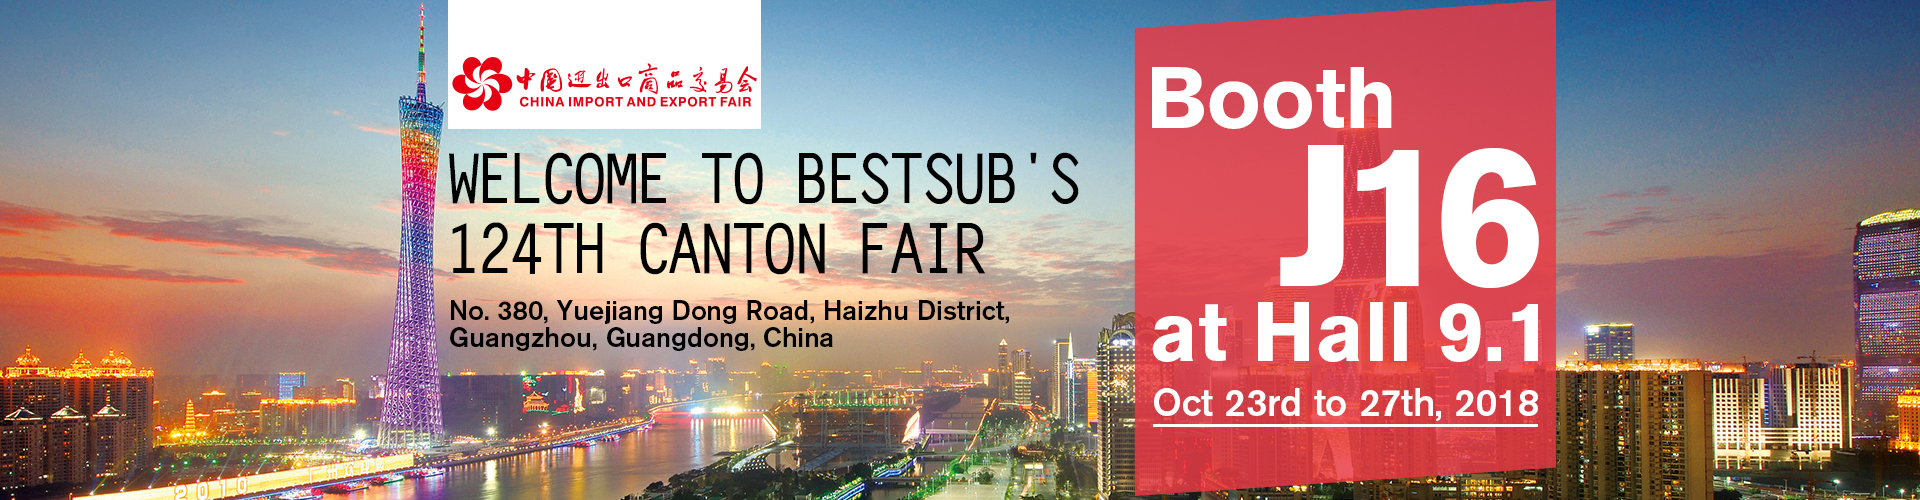 2018-9-26_BestSub-s_124th_Canton_Fair_homepage